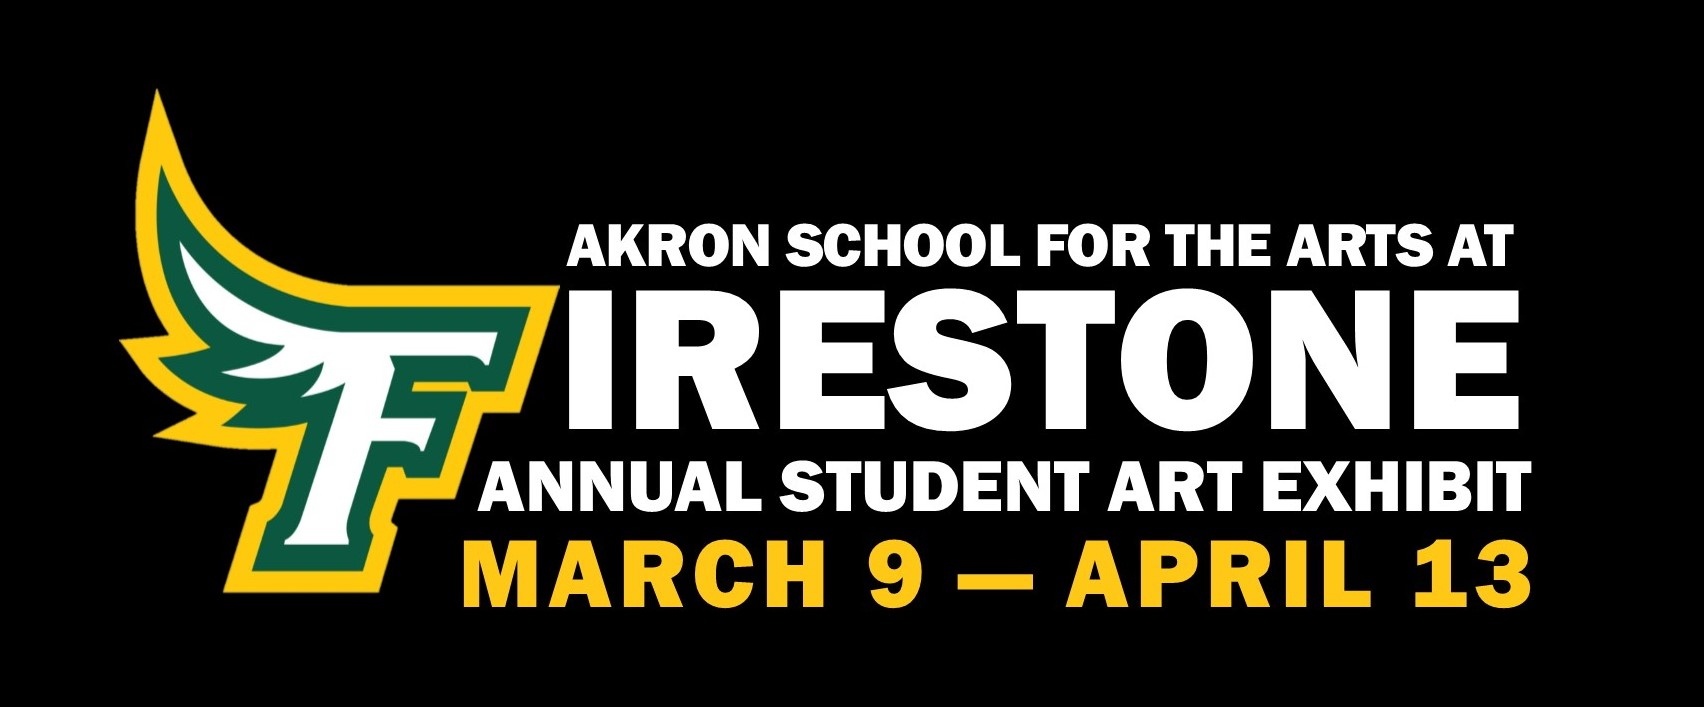 Firestone Annual Student Art Exhibition show image